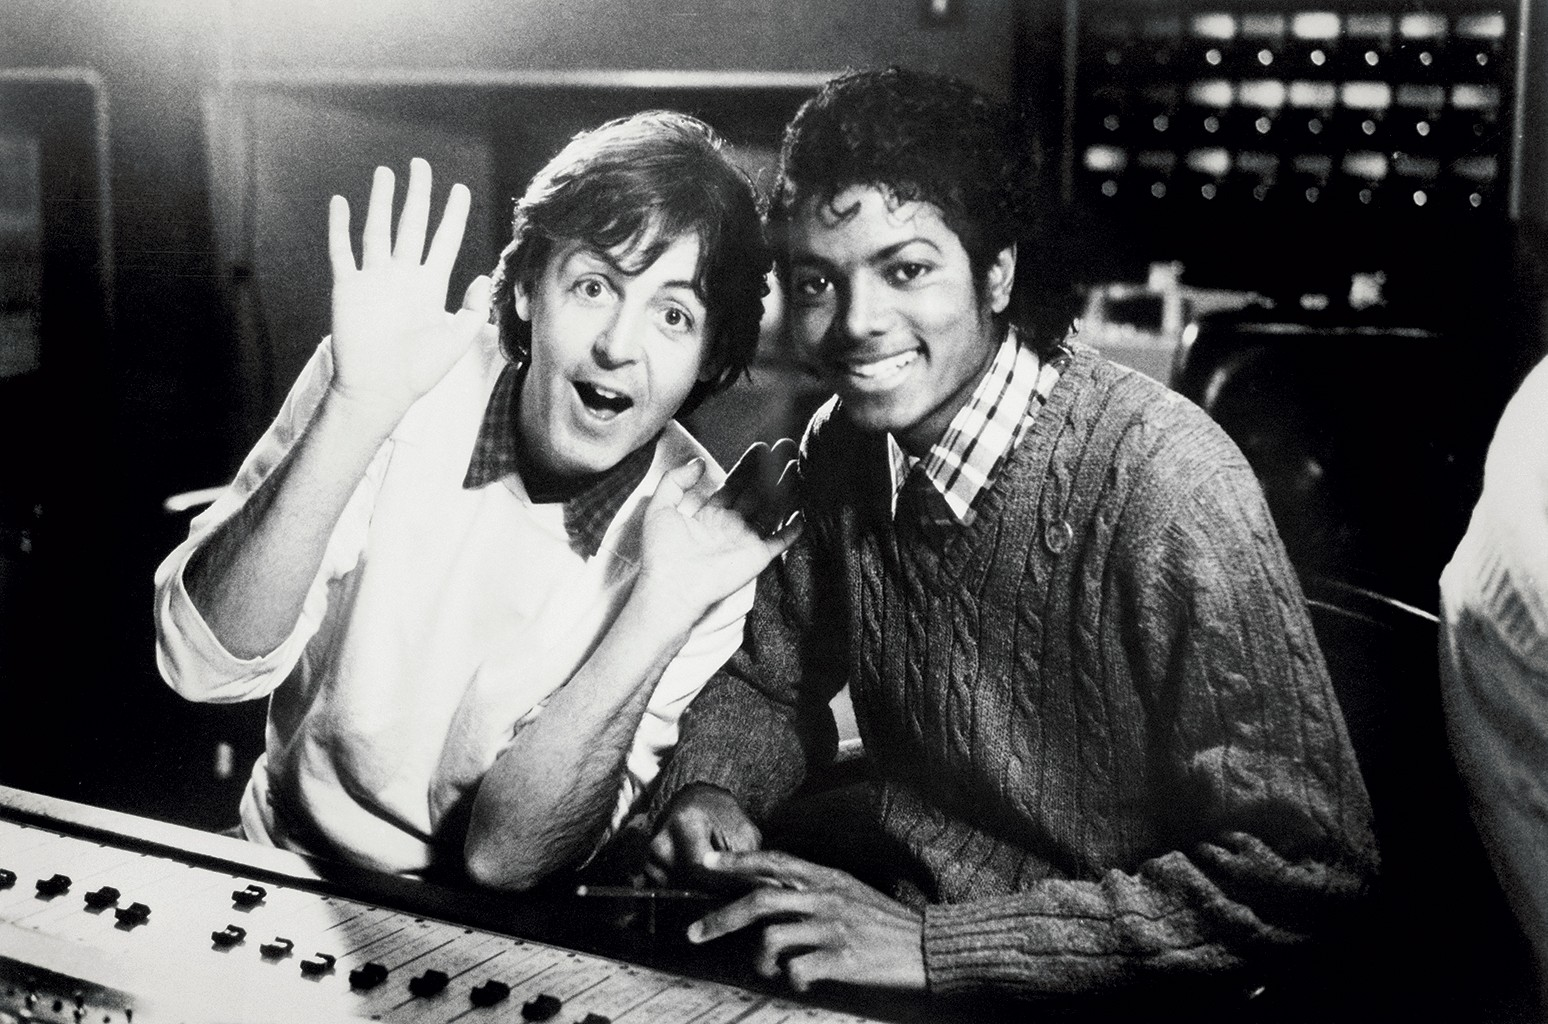 Paul McCartney & Michael Jackson